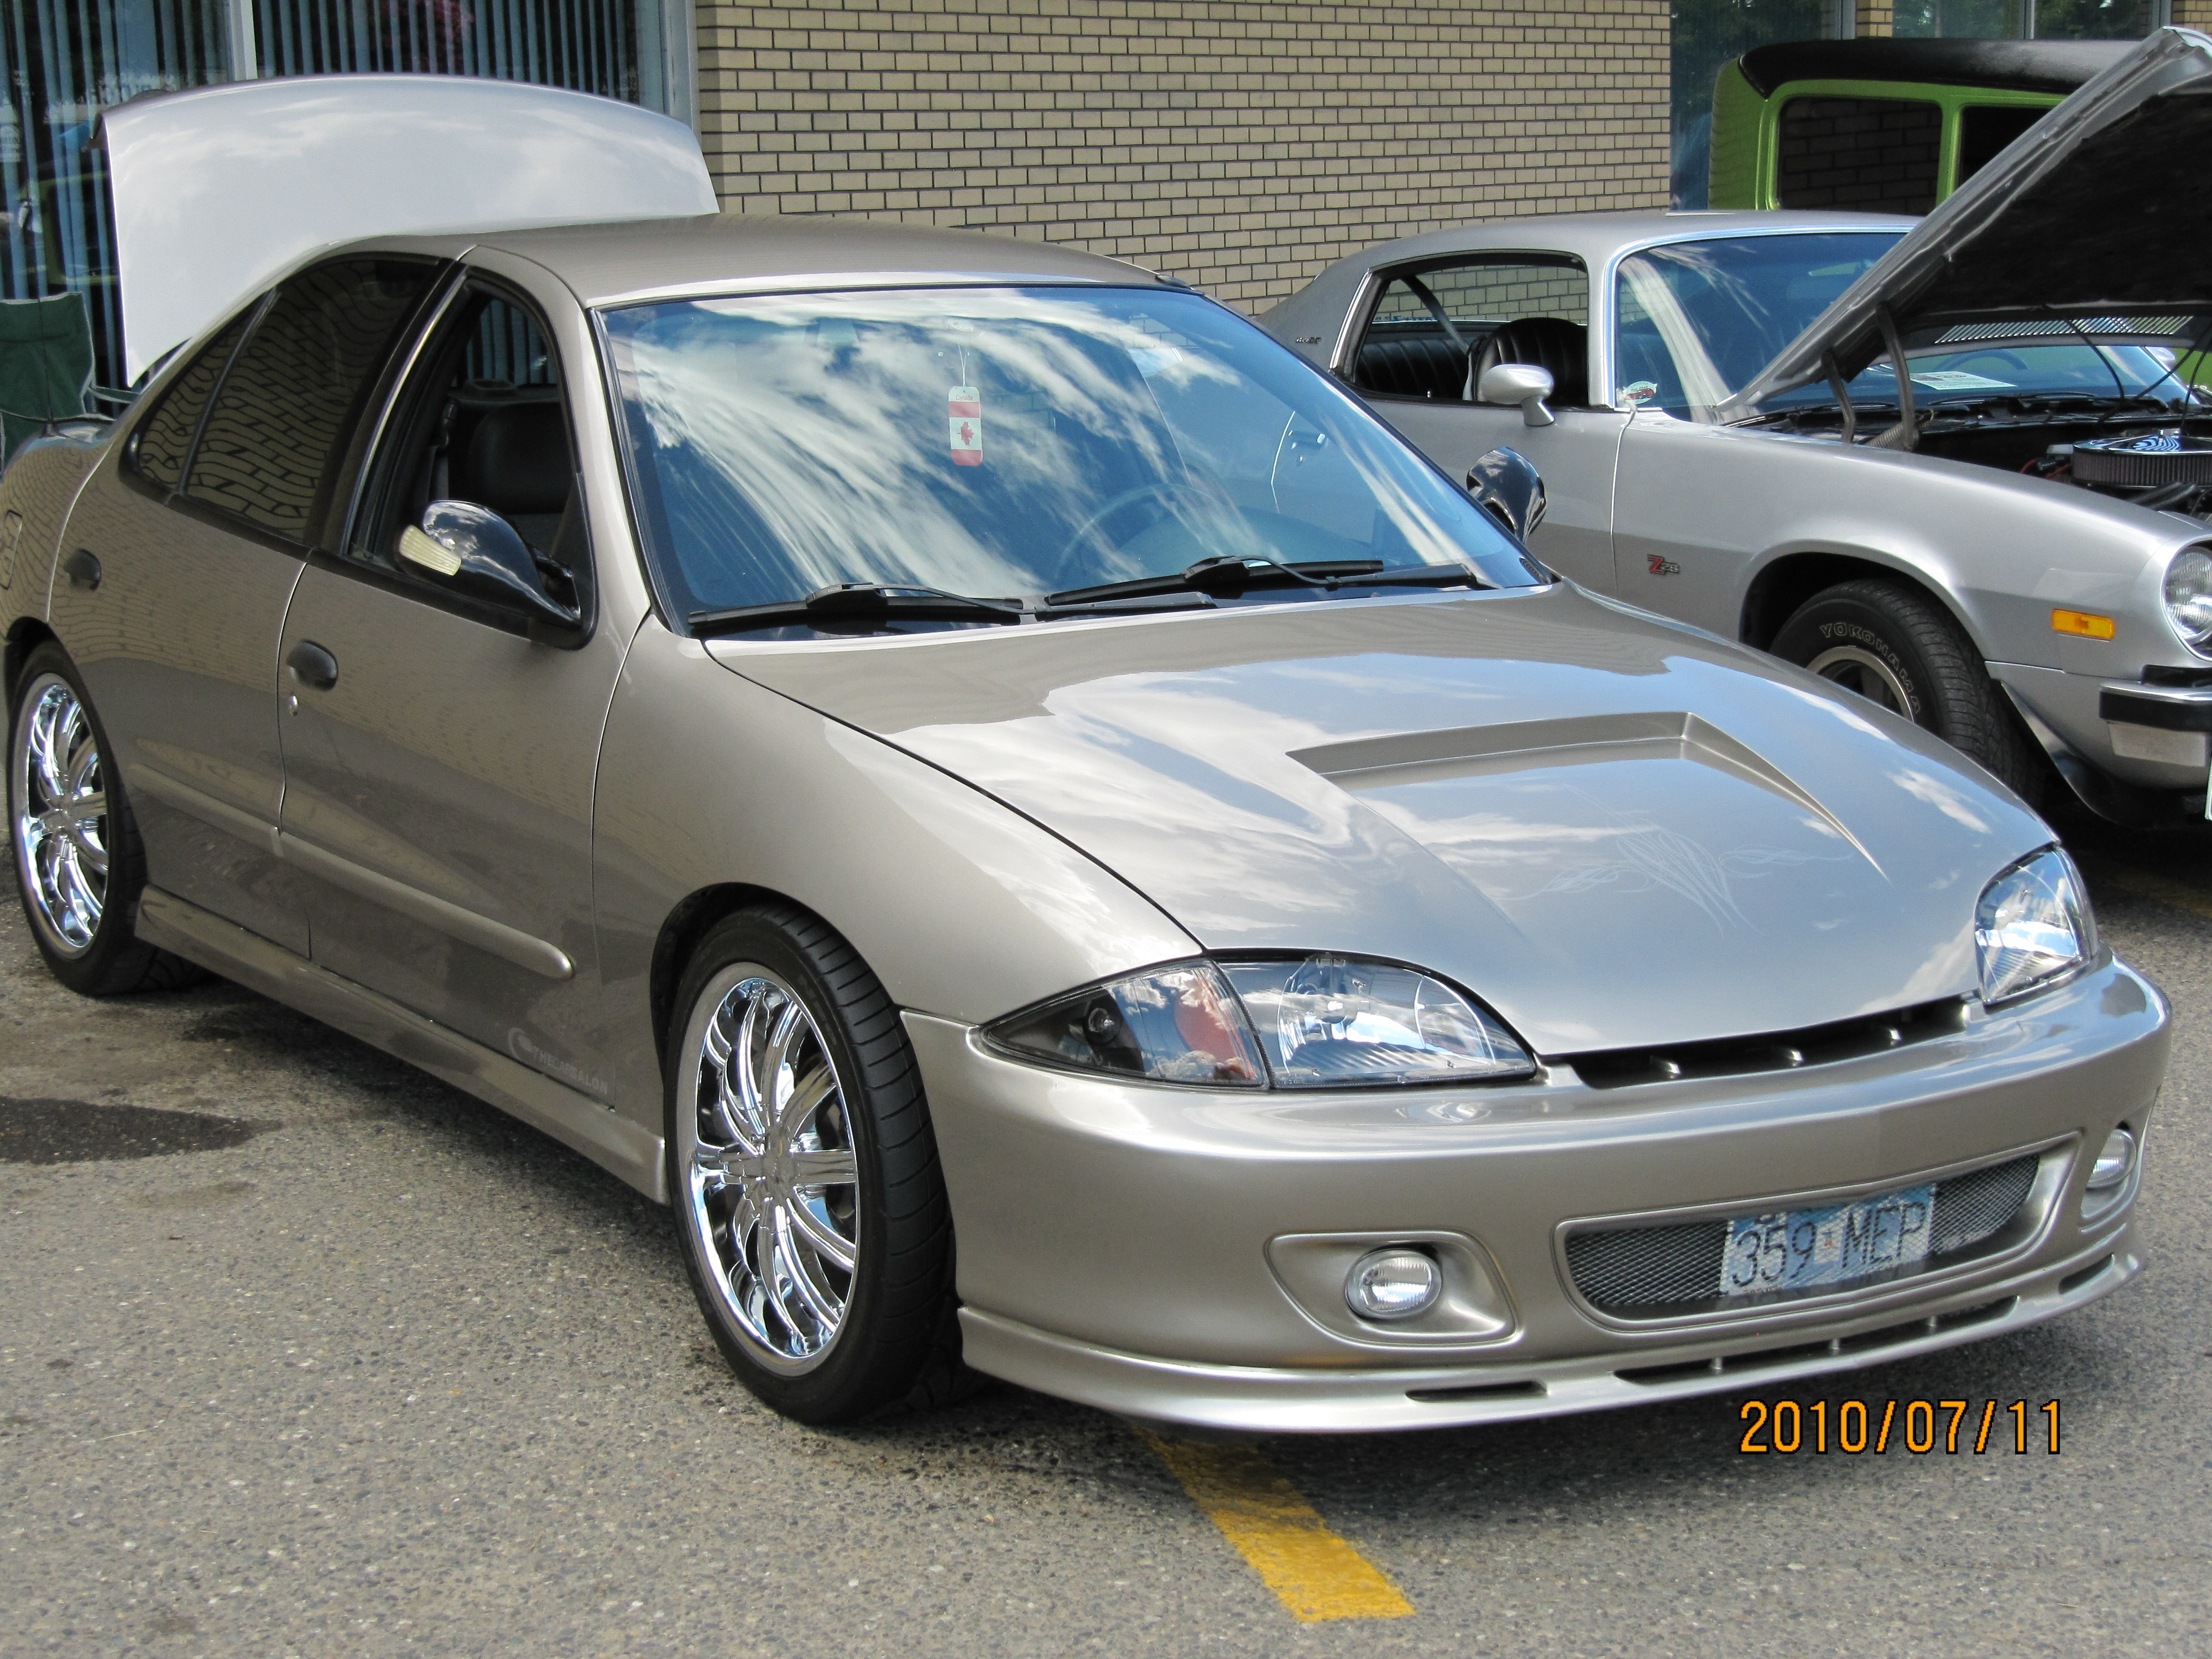 chevyrolla's 2002 Chevrolet Cavalier